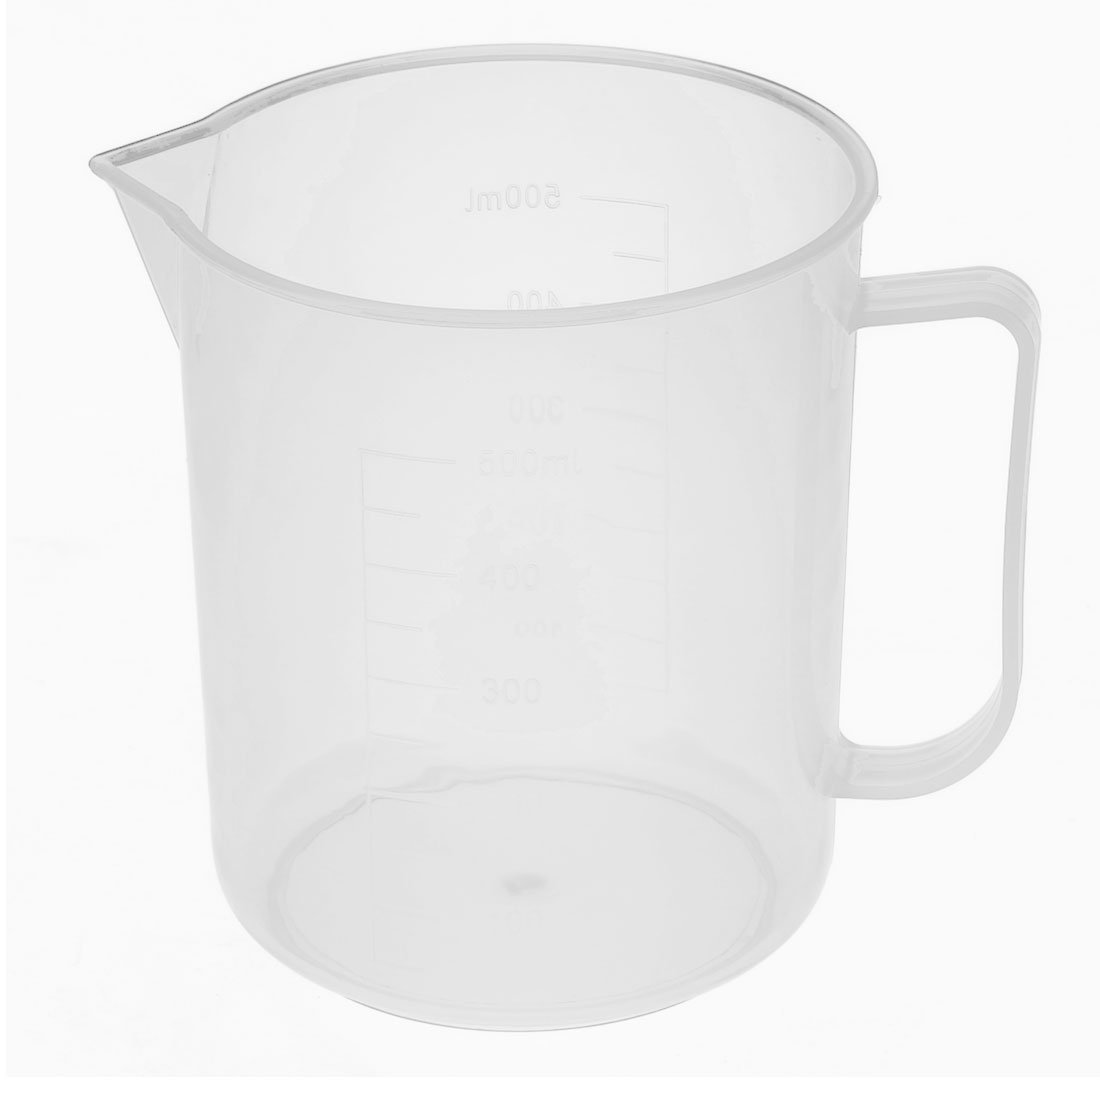 Kitchen Laboratory Environmentally Plastic Measuring Cup Clear 500ml Capacity